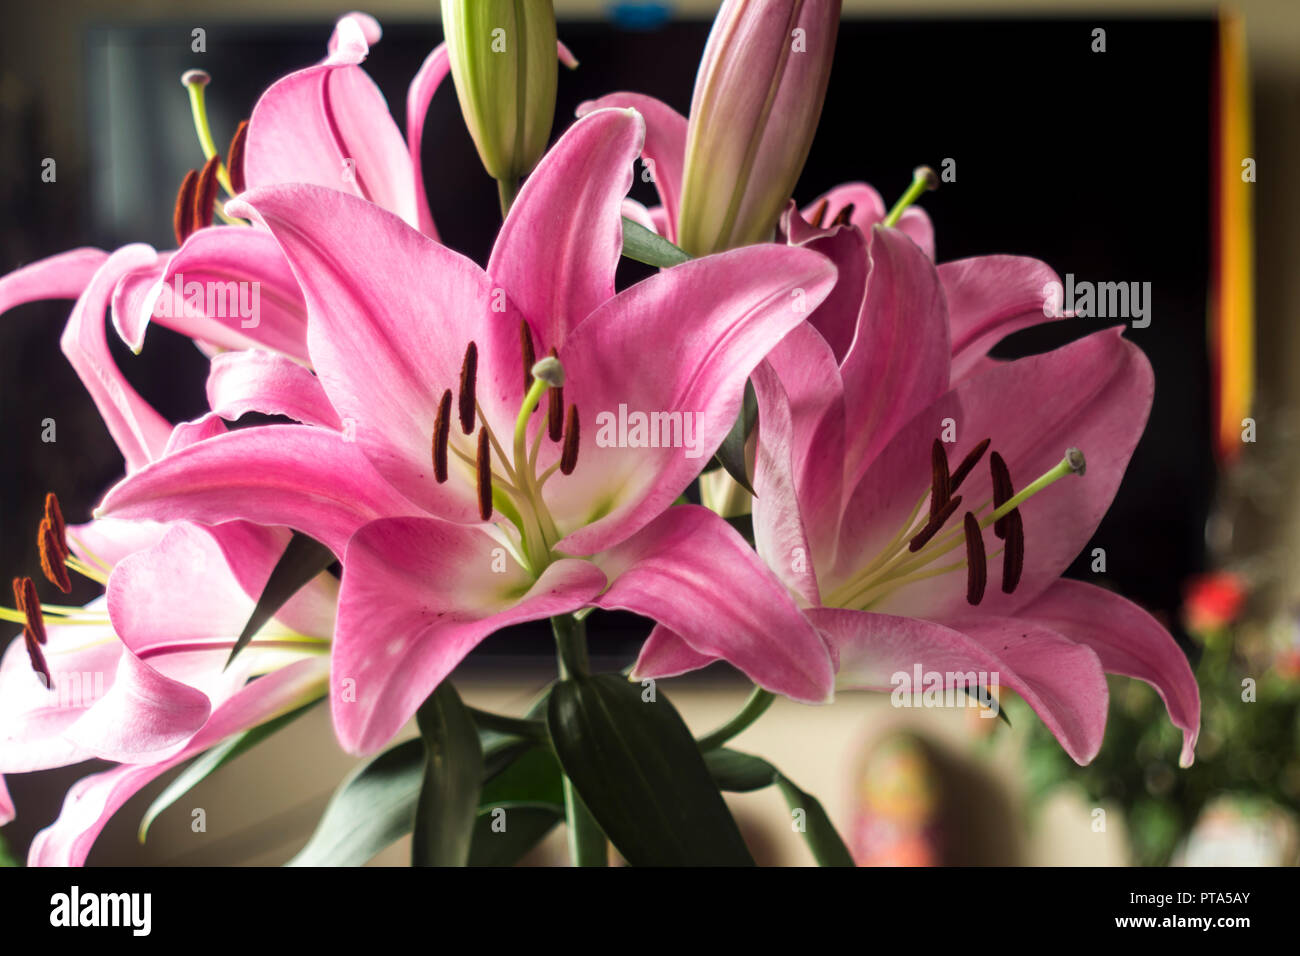 Blooming Pink Lily Flowerstals Of Pink Color Brown Stamens